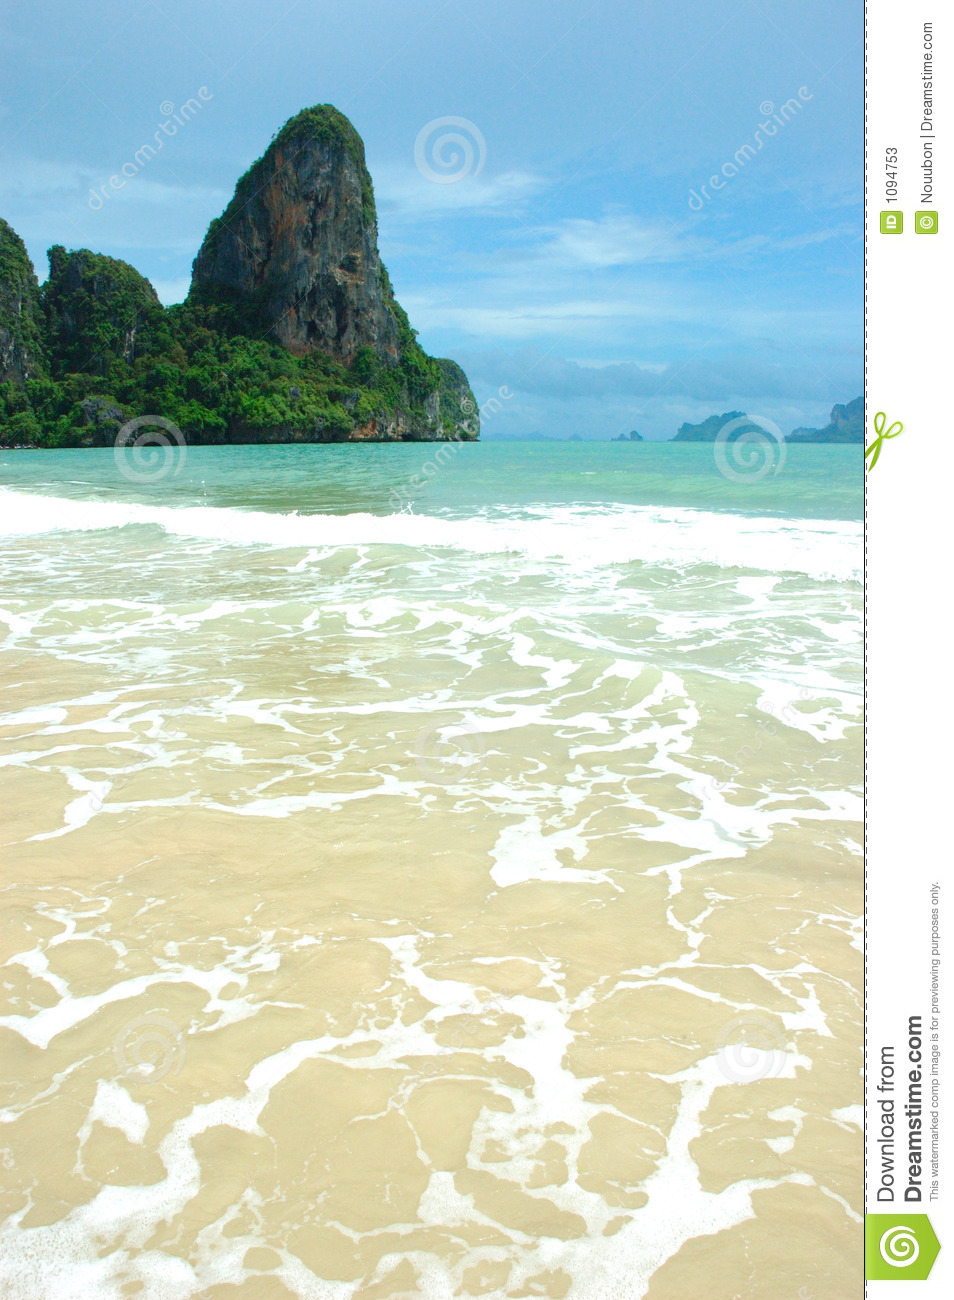 A Perfect Thailand Beach Vacation!